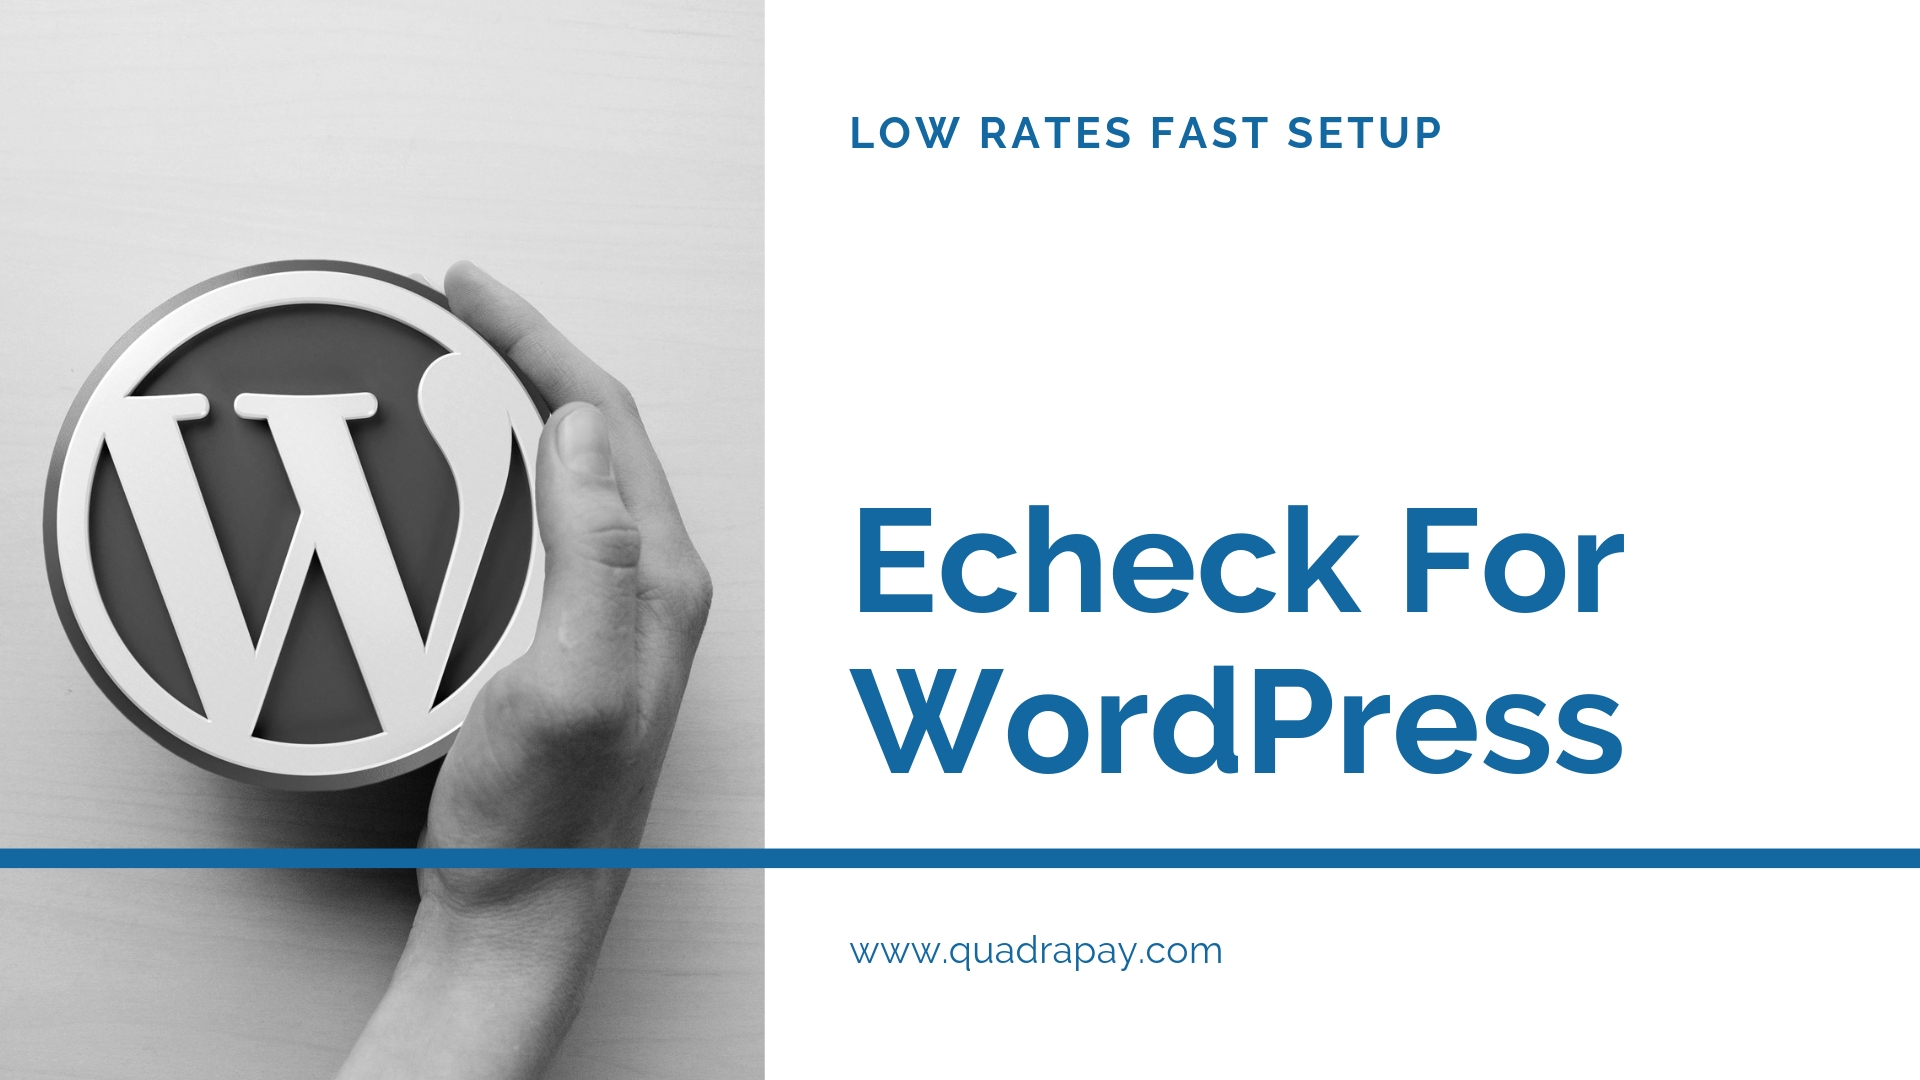 Echeck For WordPress By Quadrapay